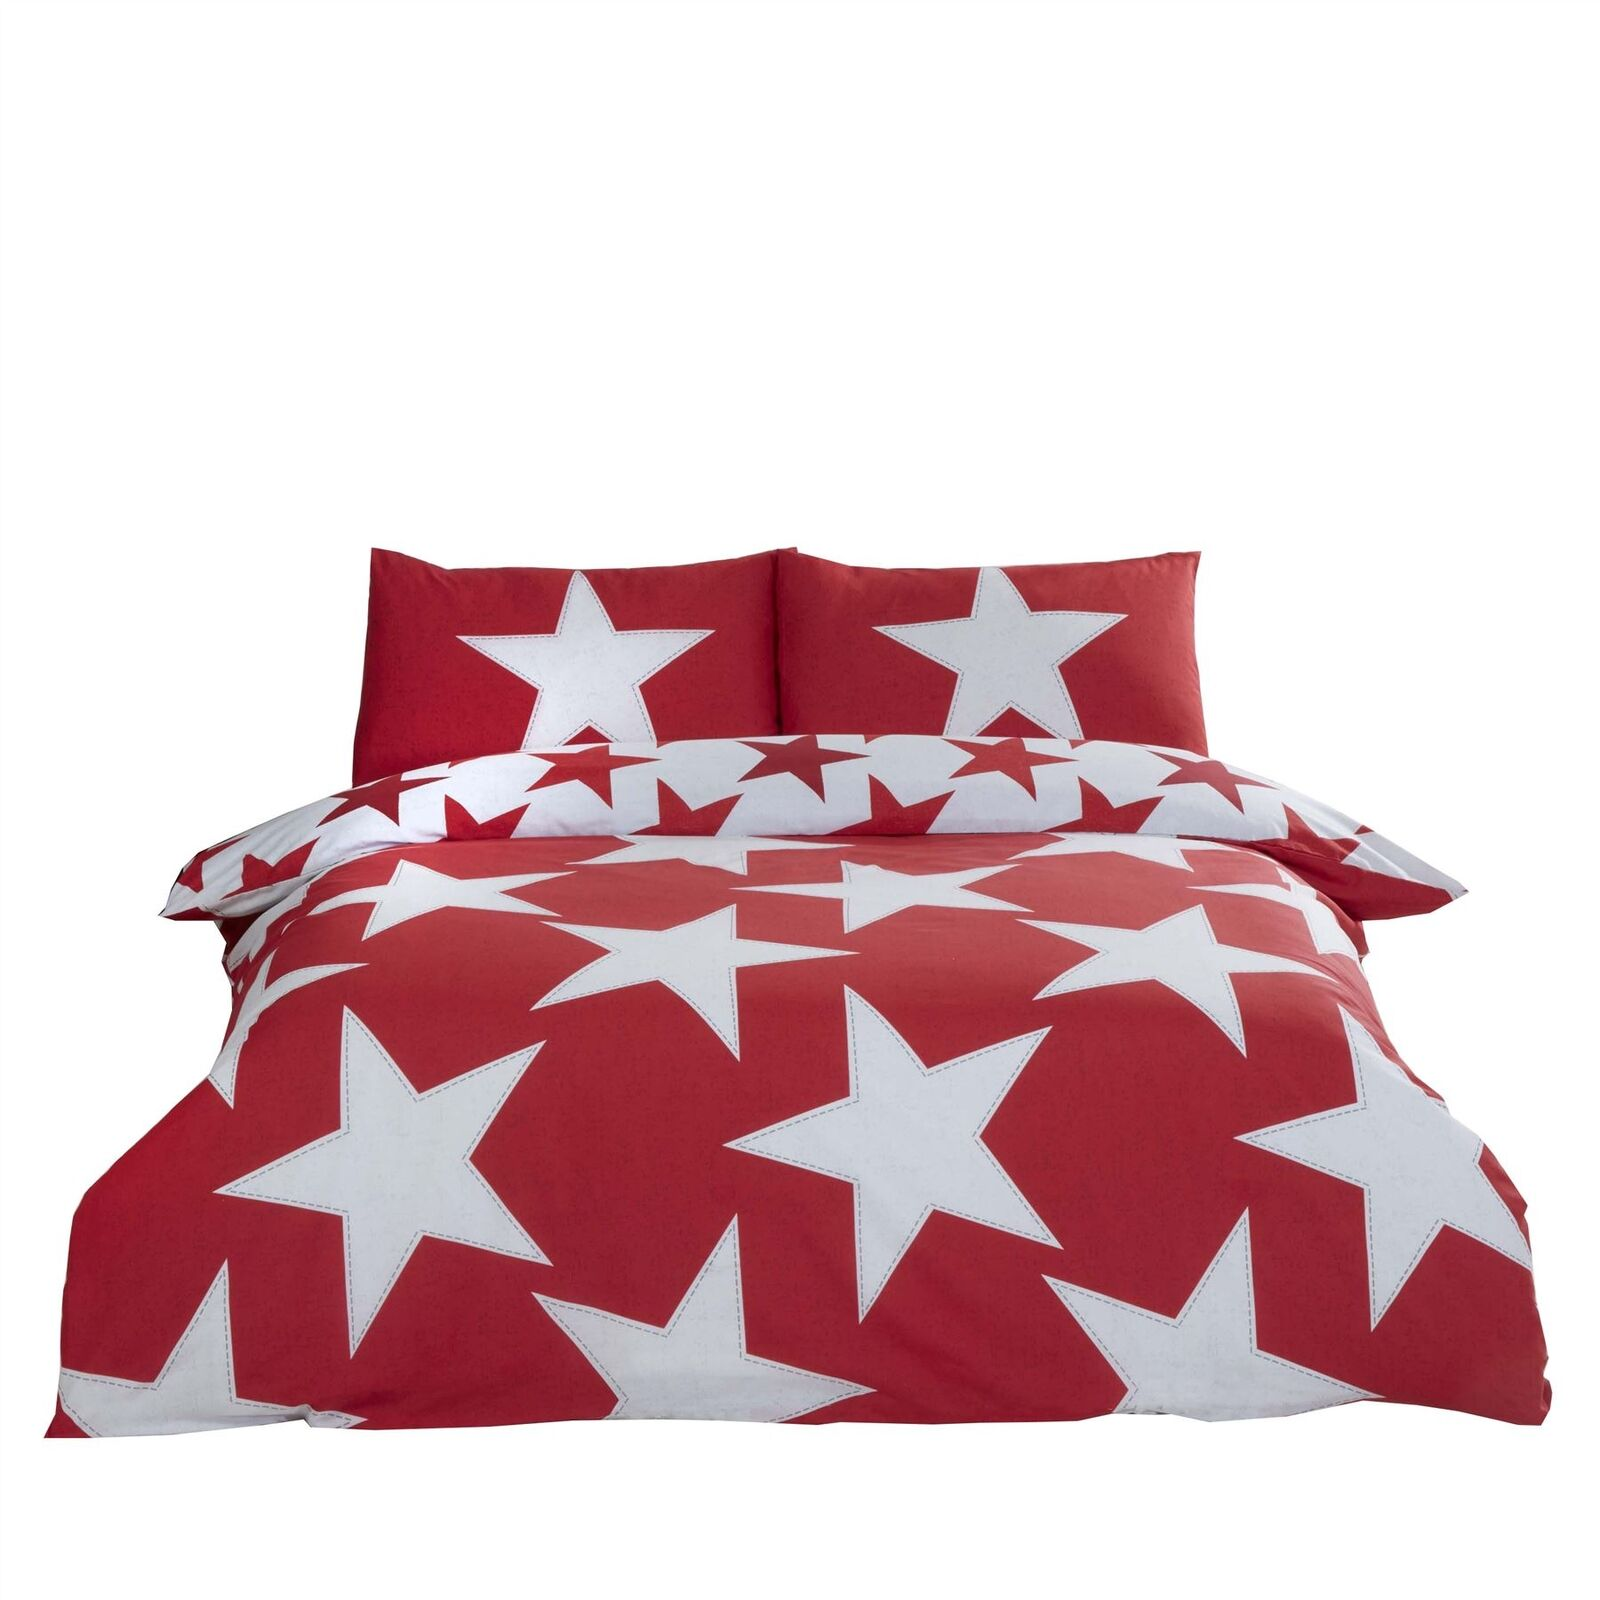 DISTRESSED STARS RED COTTON BLEND REVERSIBLE KING SIZE 4 PIECE BEDDING SET